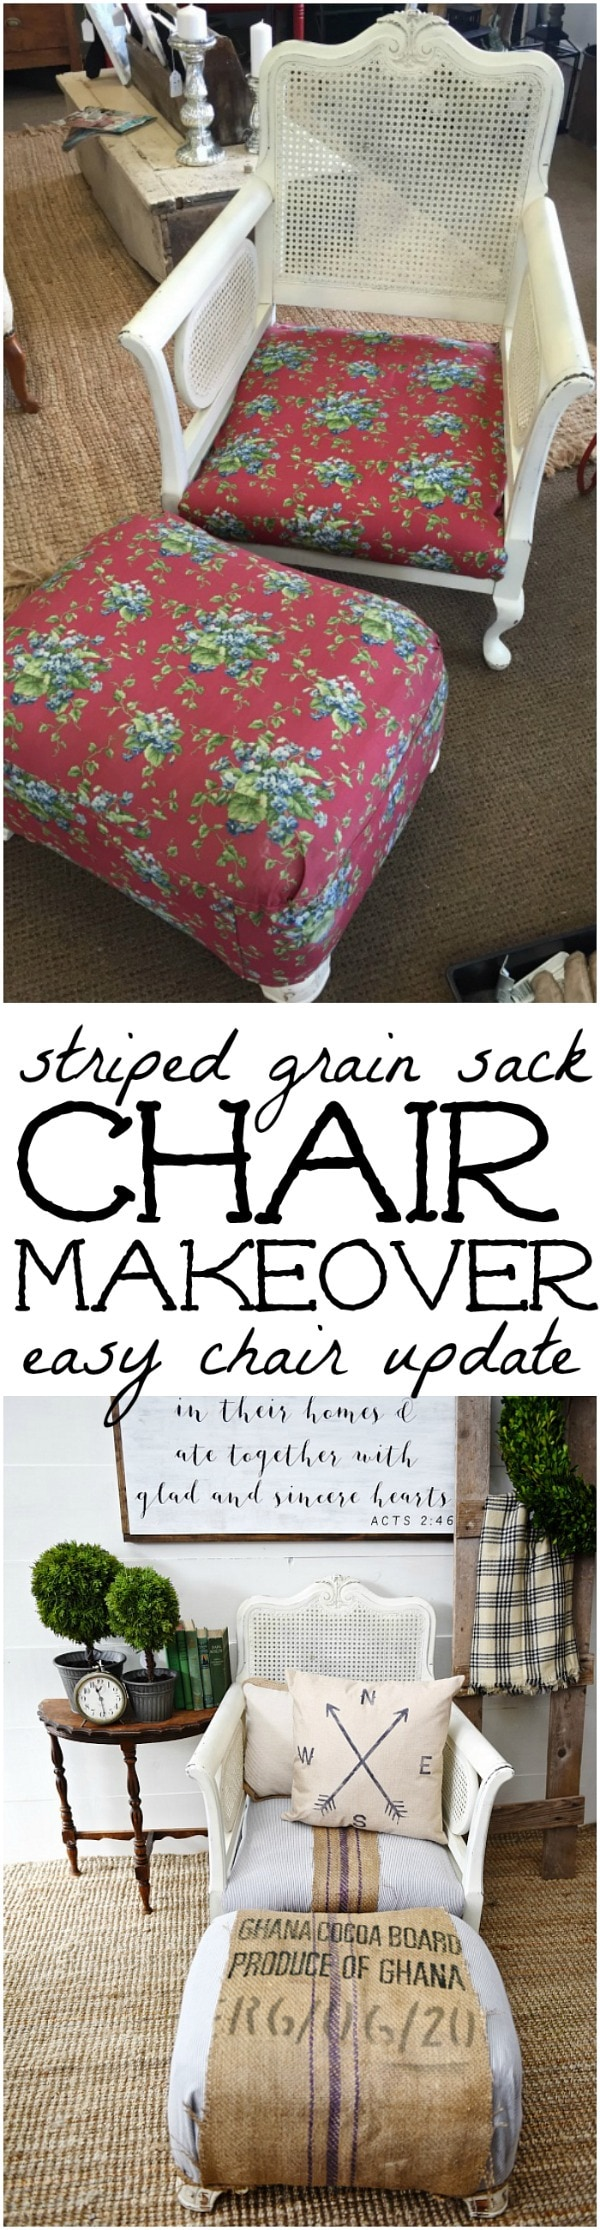 Super easy chair makeover -striped grain sack cozy chair makeover